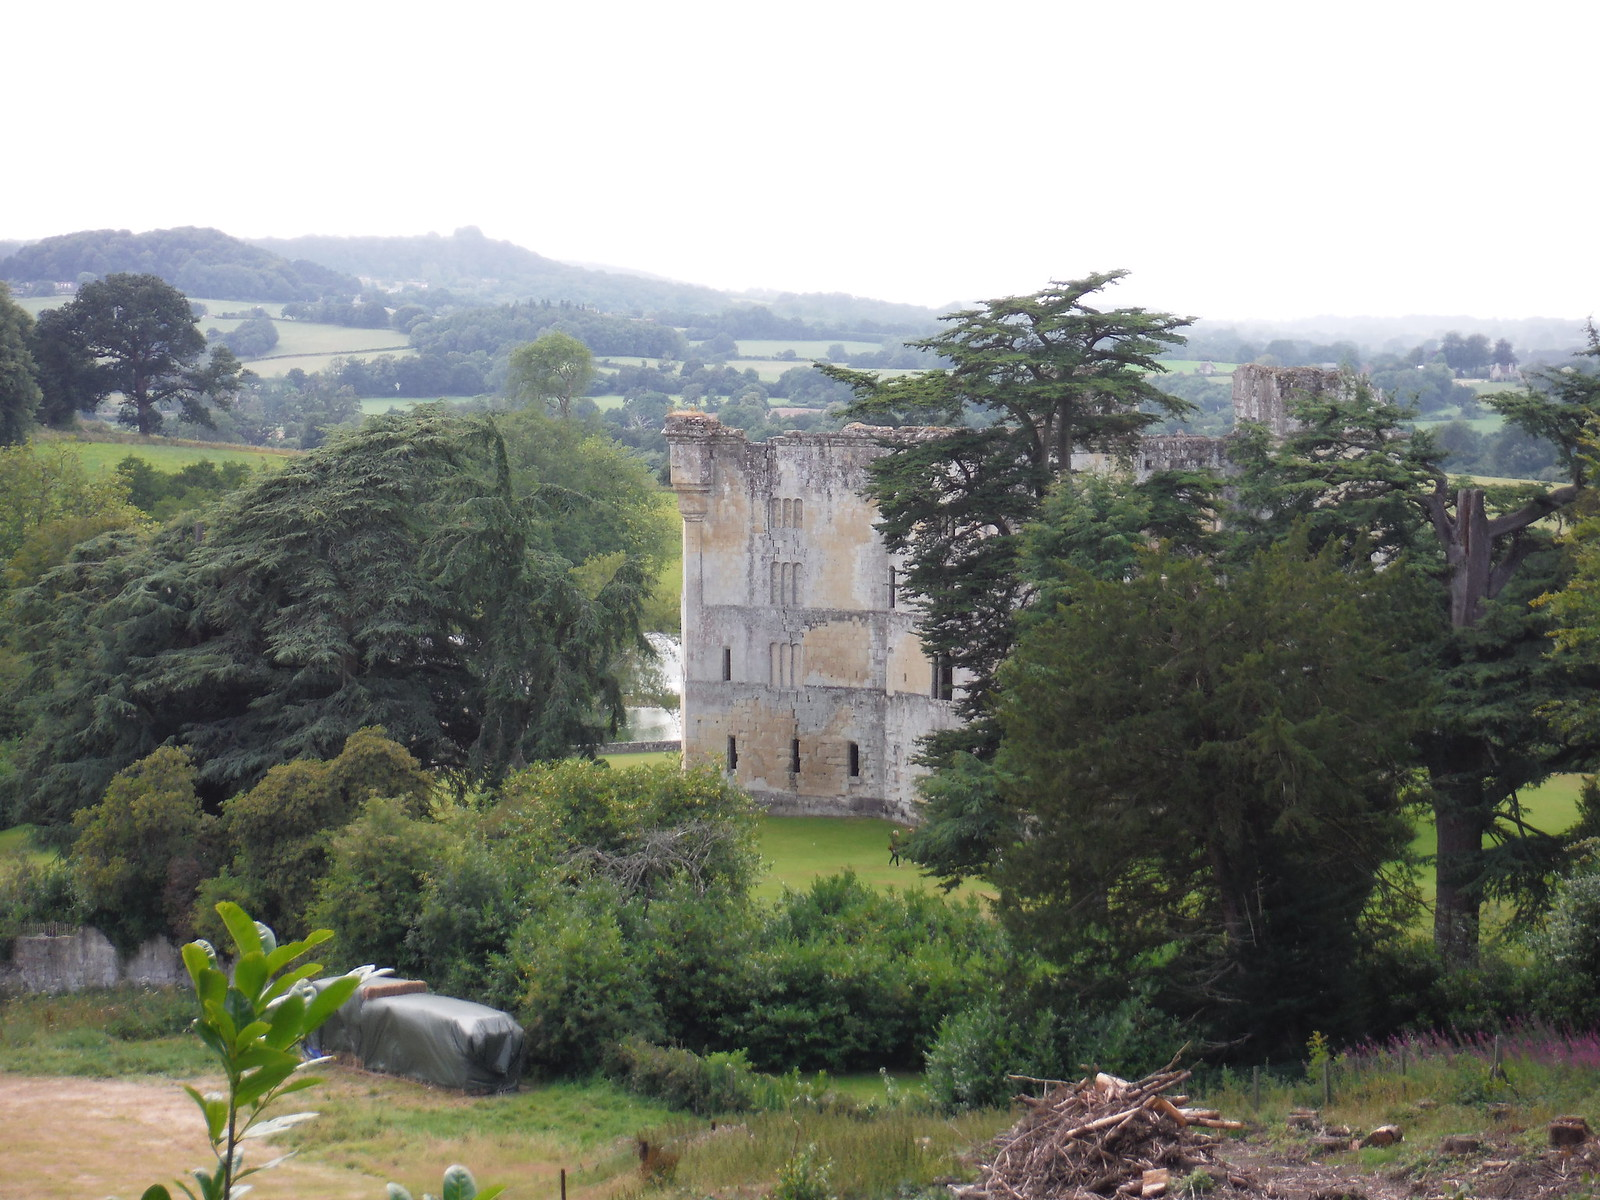 Old Wardour Castle from up in The Hanging SWC Walk 252 Tisbury Circular via Donhead St. Andrew